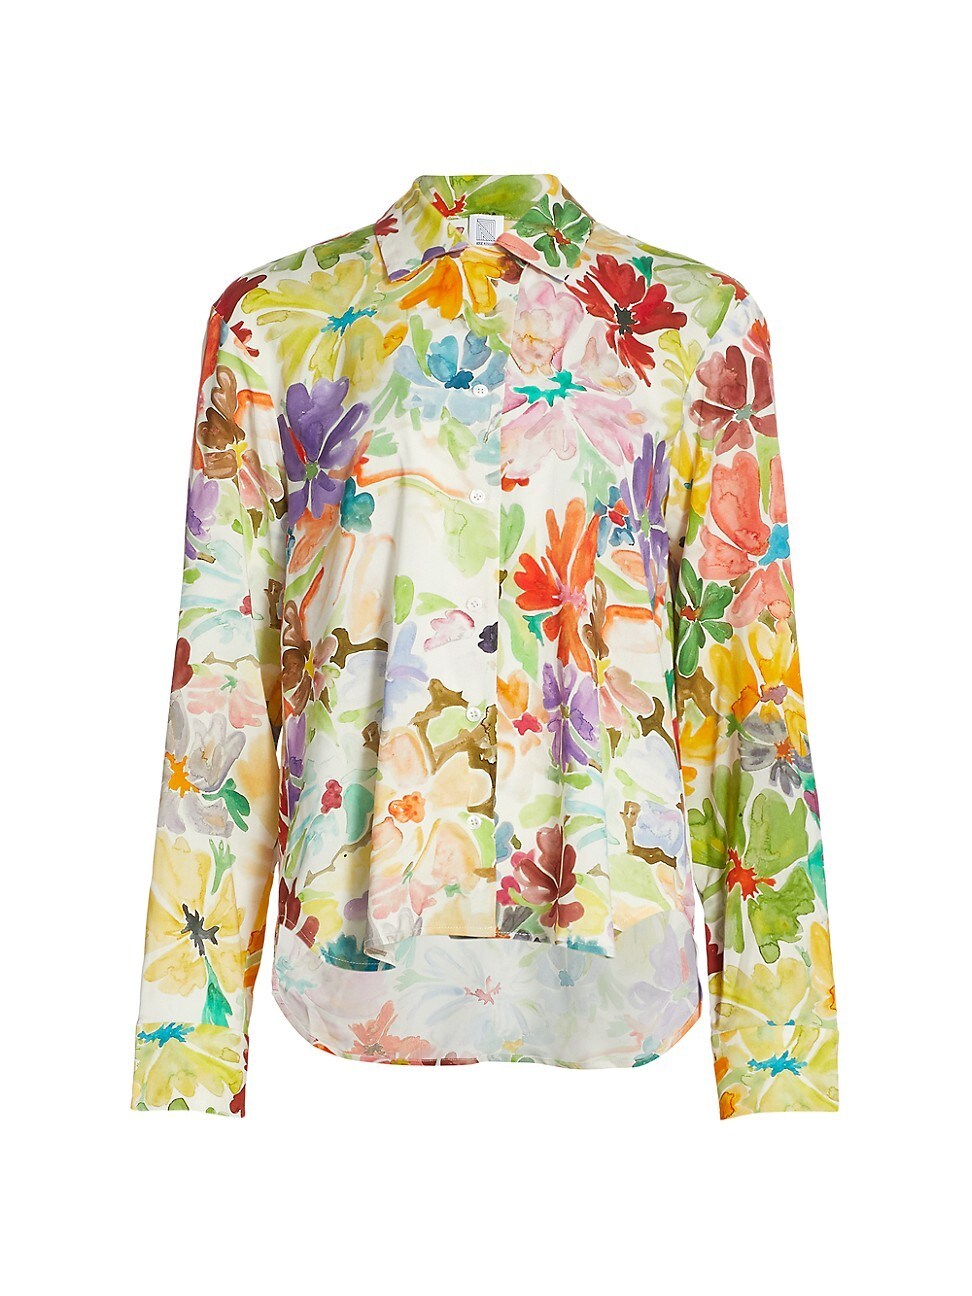 Rosie Assoulin Women's Floral Button-up Shirt In Rainbow